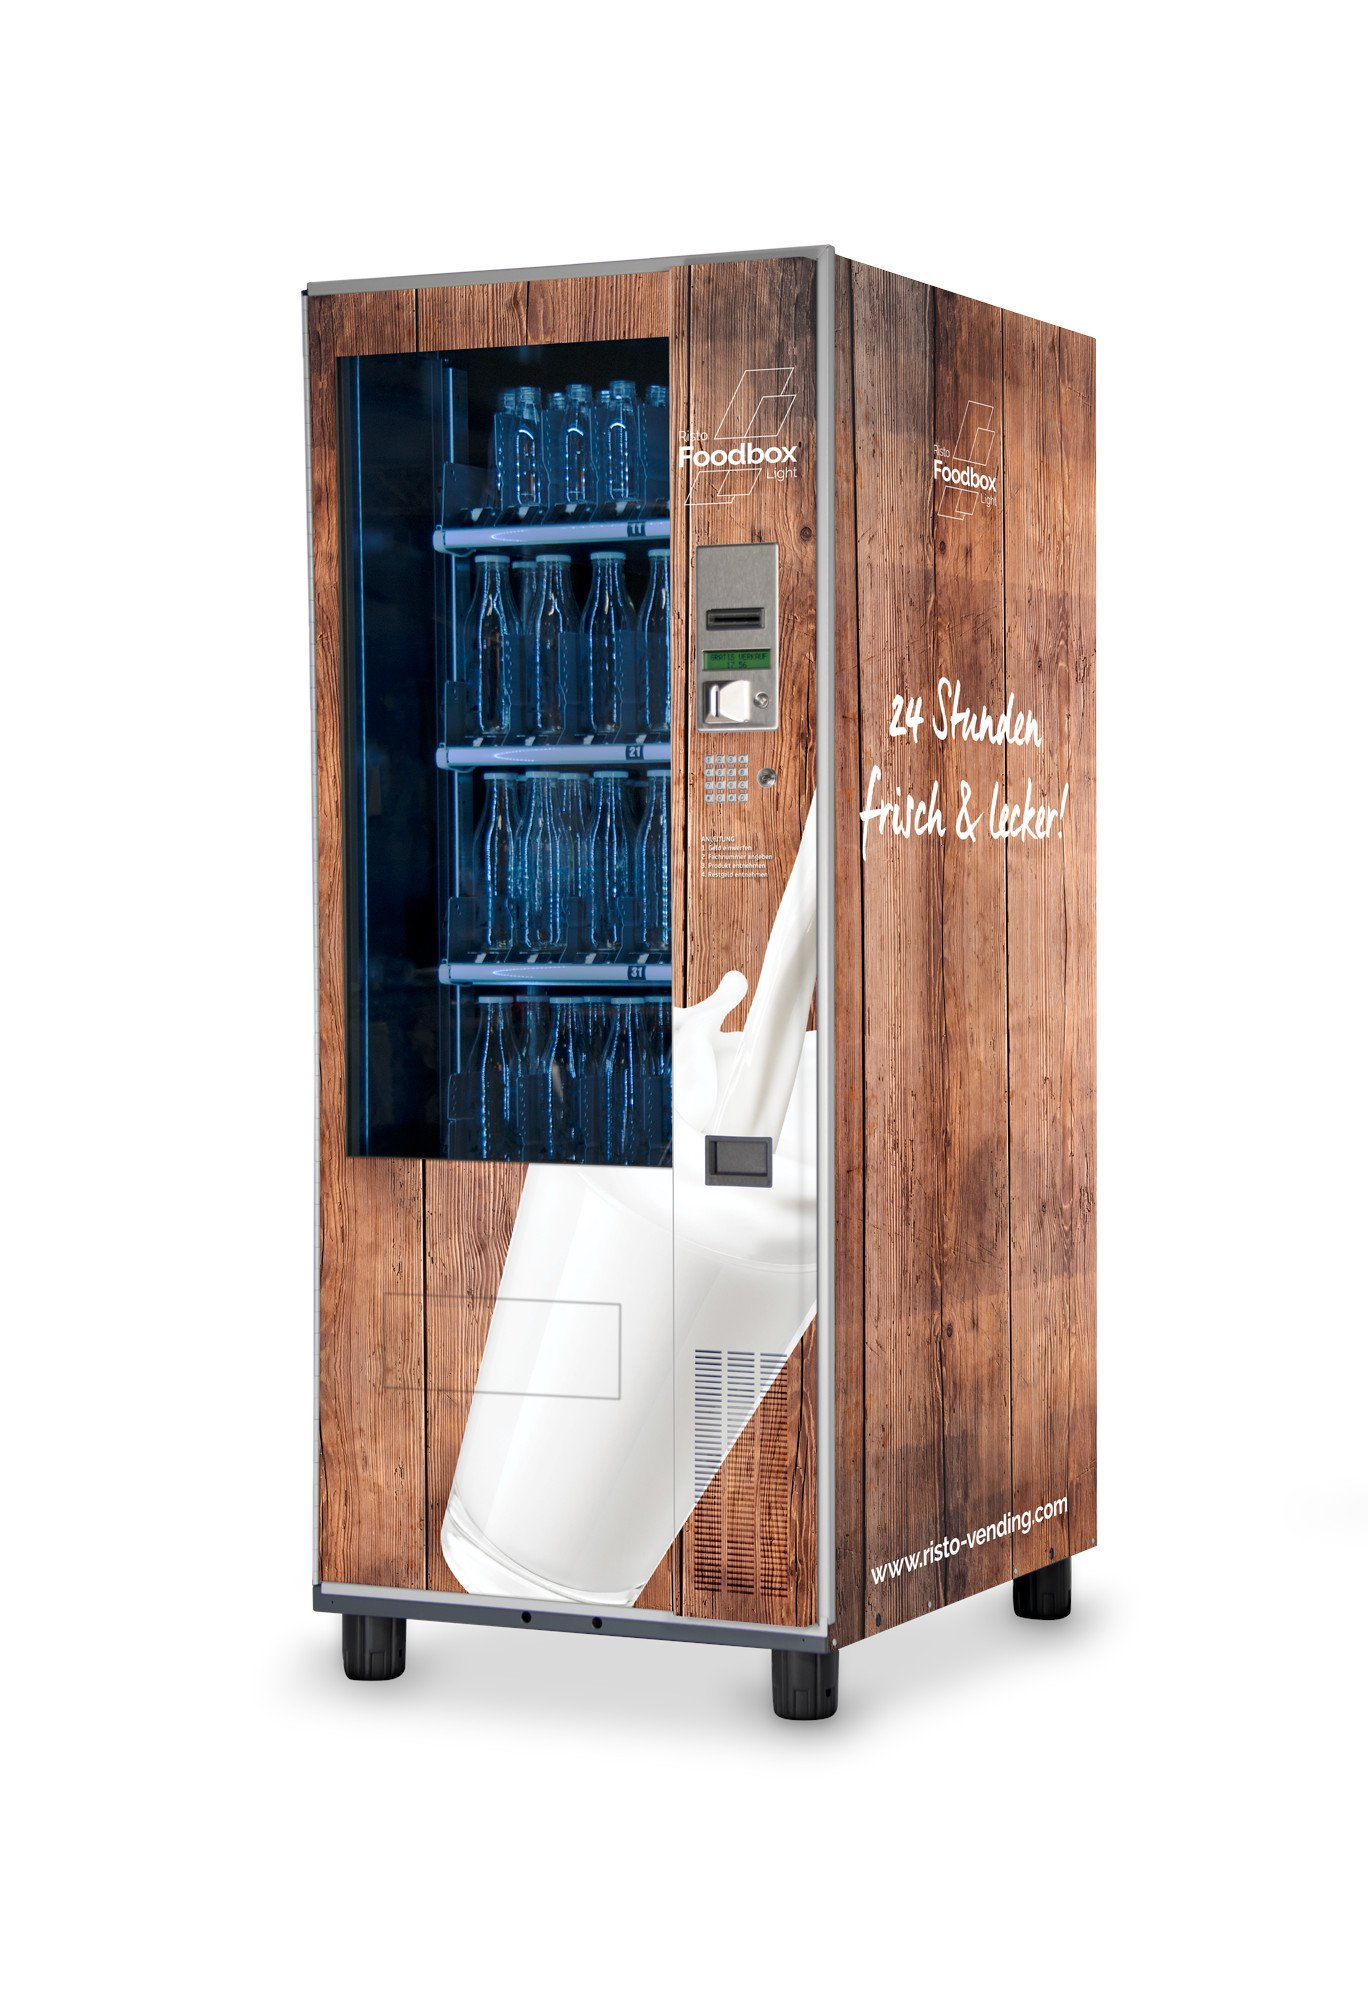 Foodbox Light Flaschenautomat-Warenautomat-Foodbox-Light-Bottle-Vending-Machine-Braun